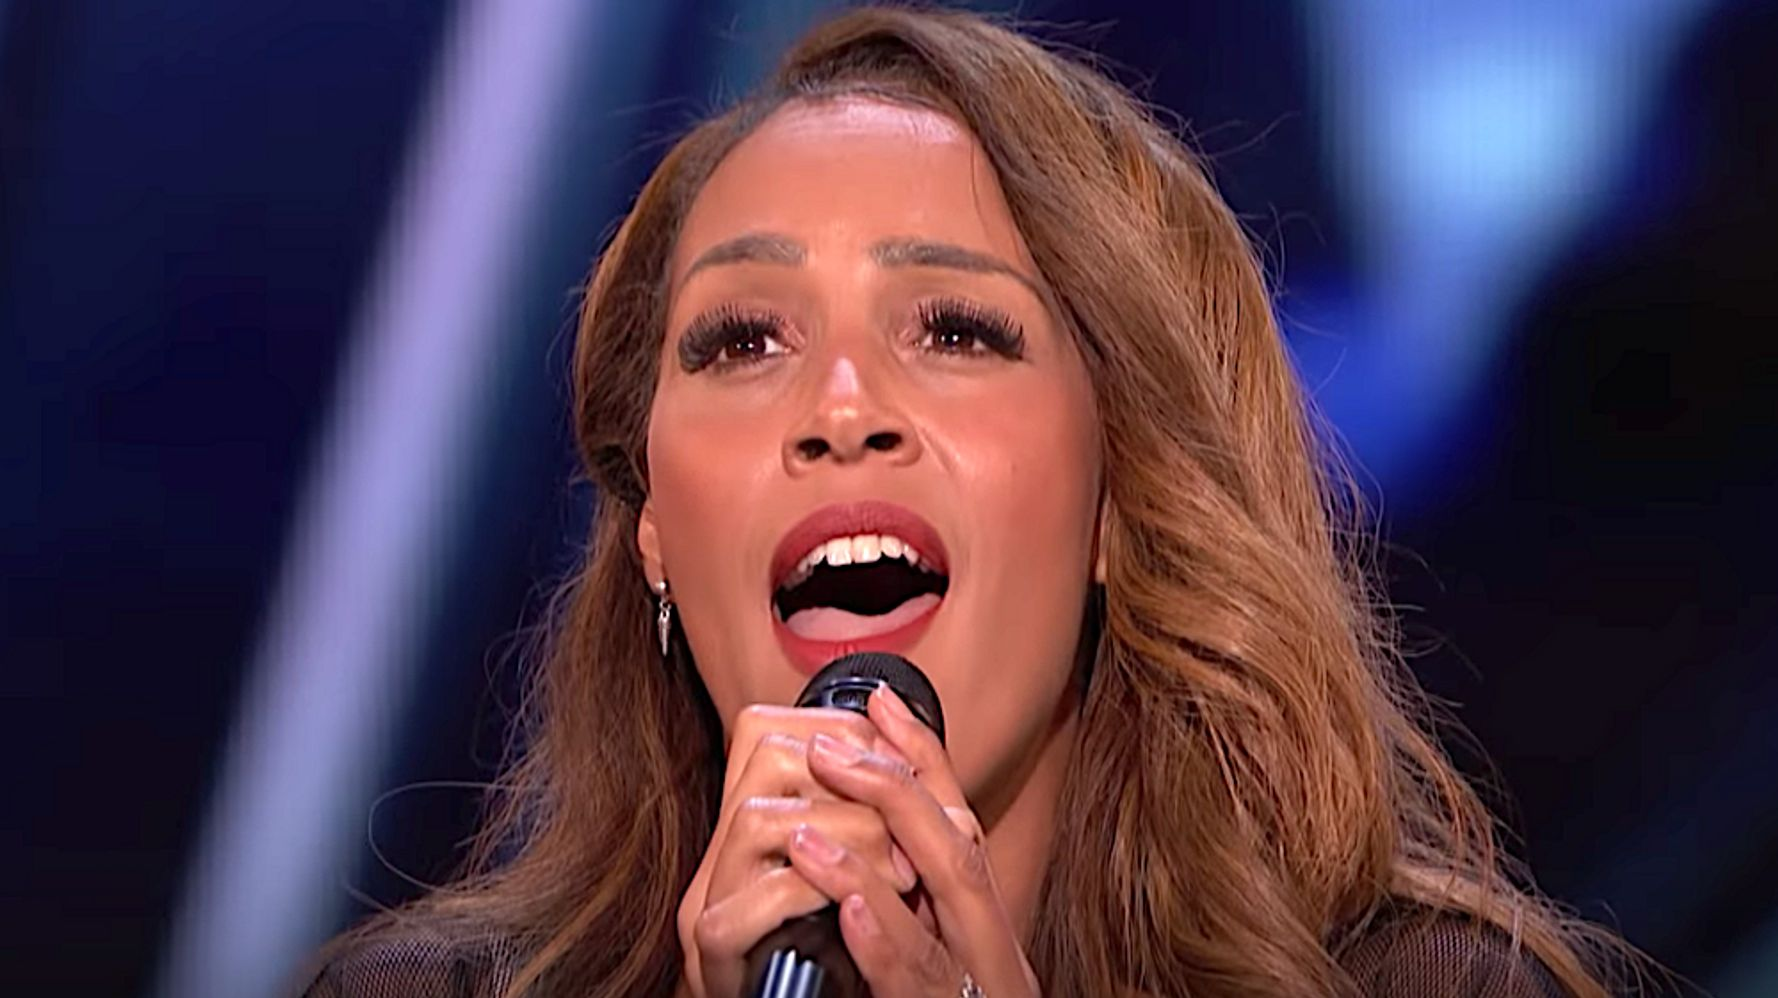 Singer Sounds 'Exactly Like Whitney Houston' On 'America's